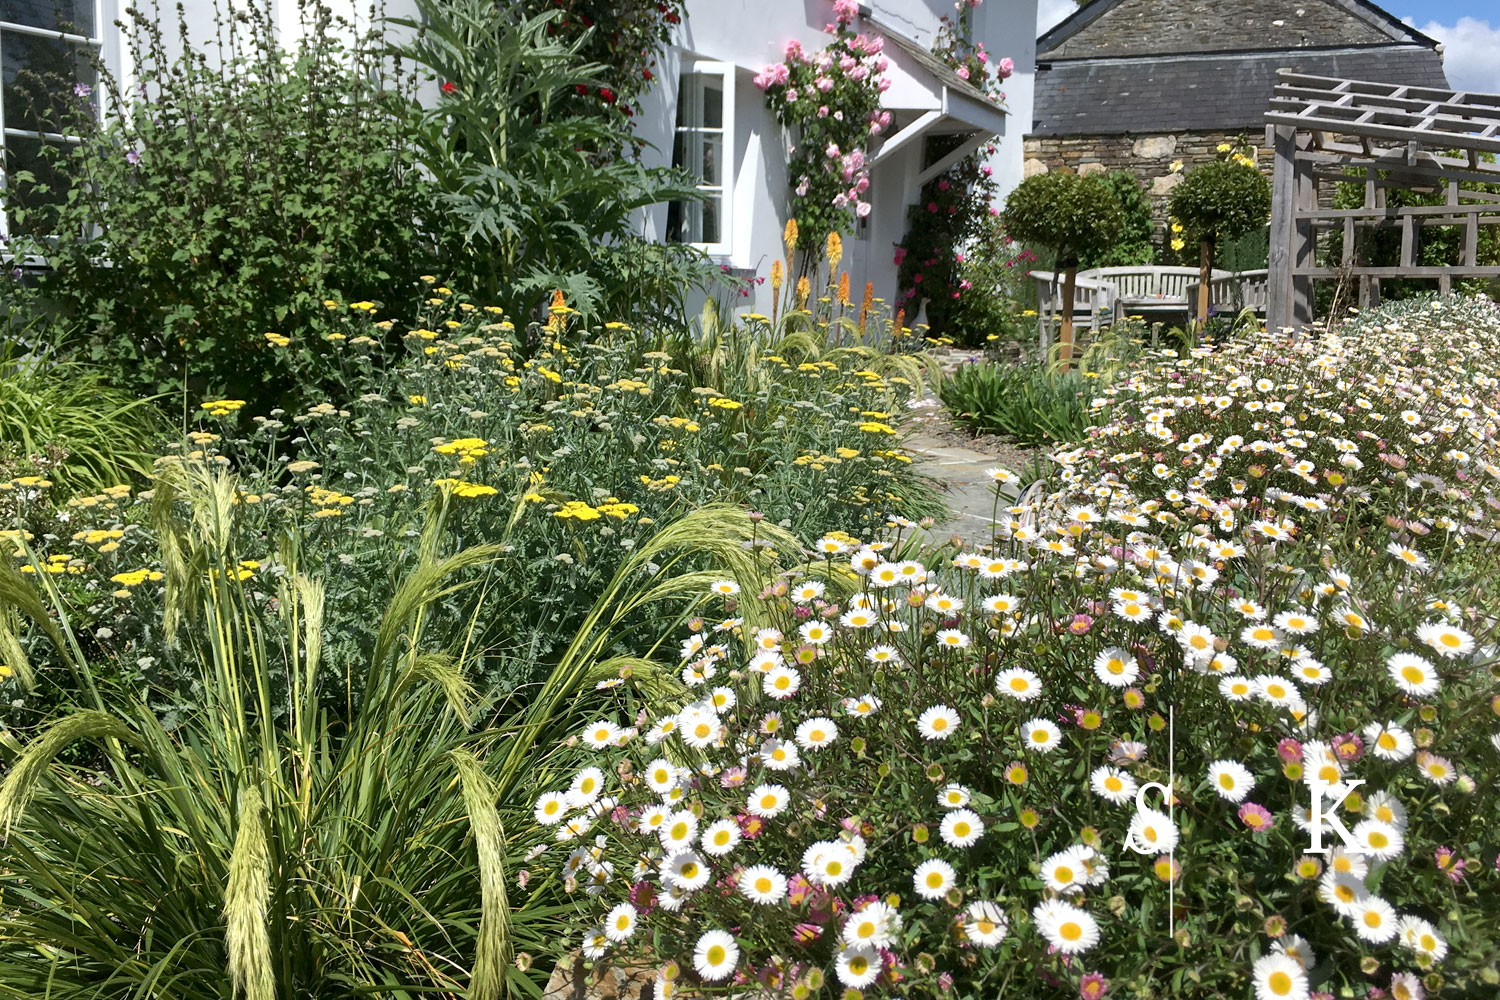 one year after planting in Cornwall garden near Lostwithiel